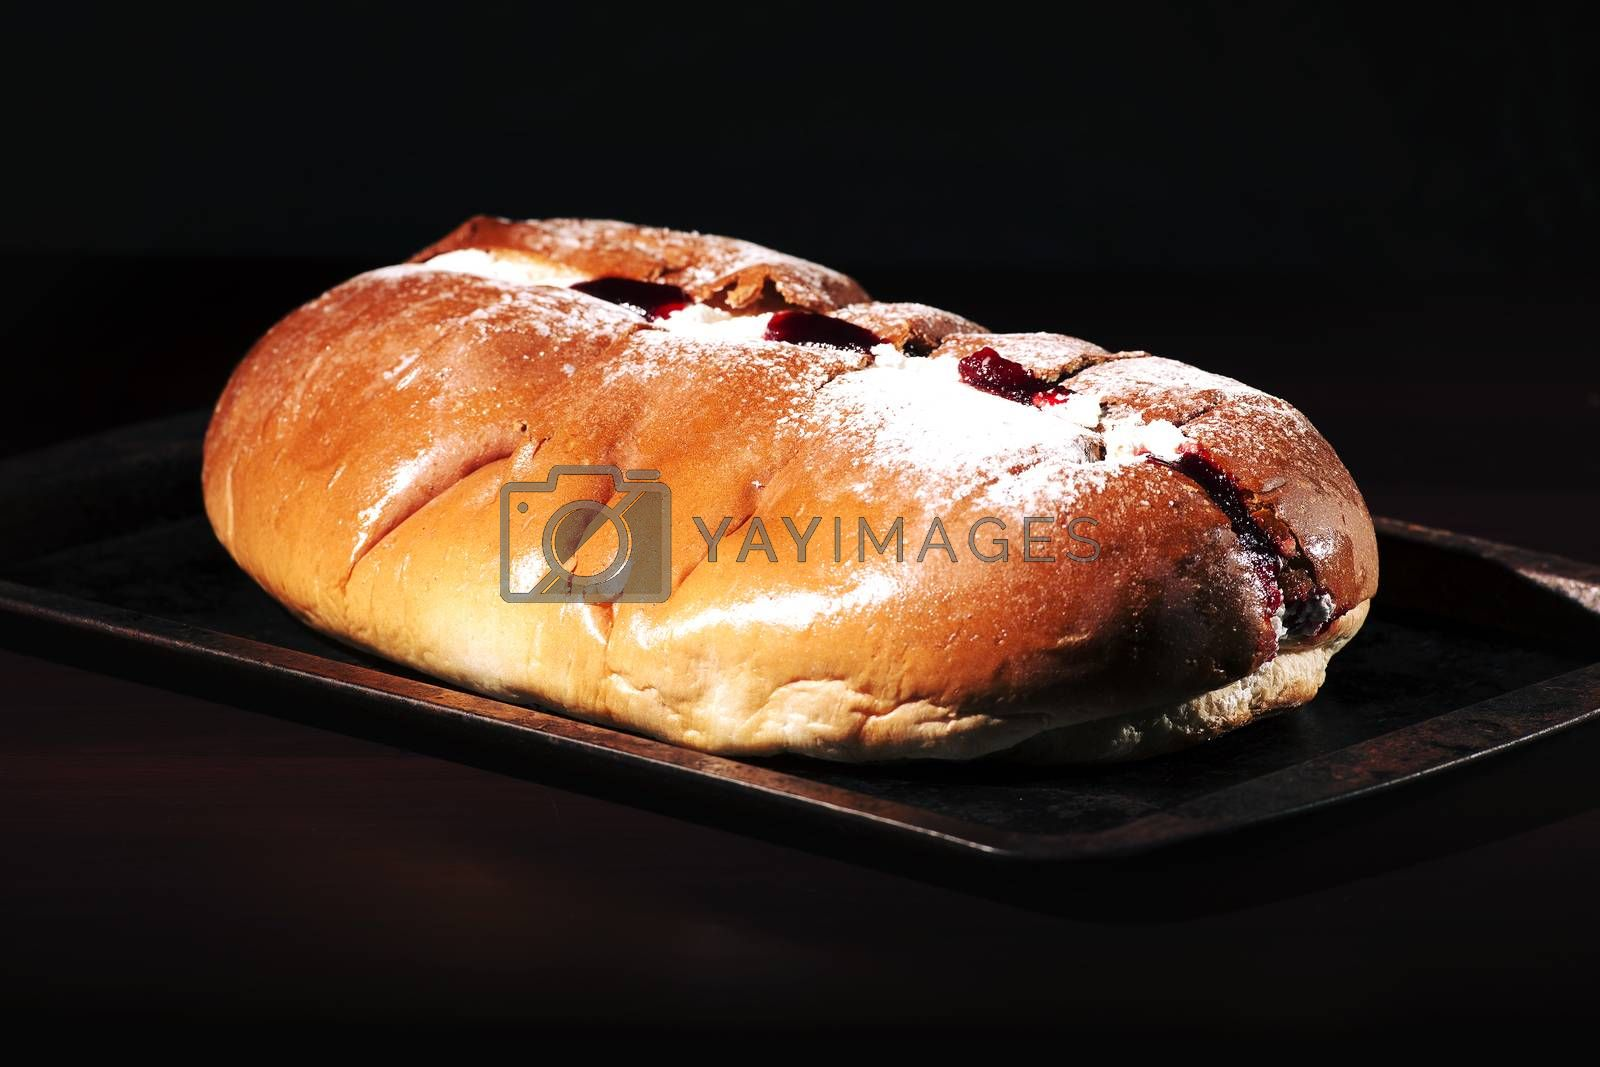 Raspberry jam and cream pastry on a baking tray